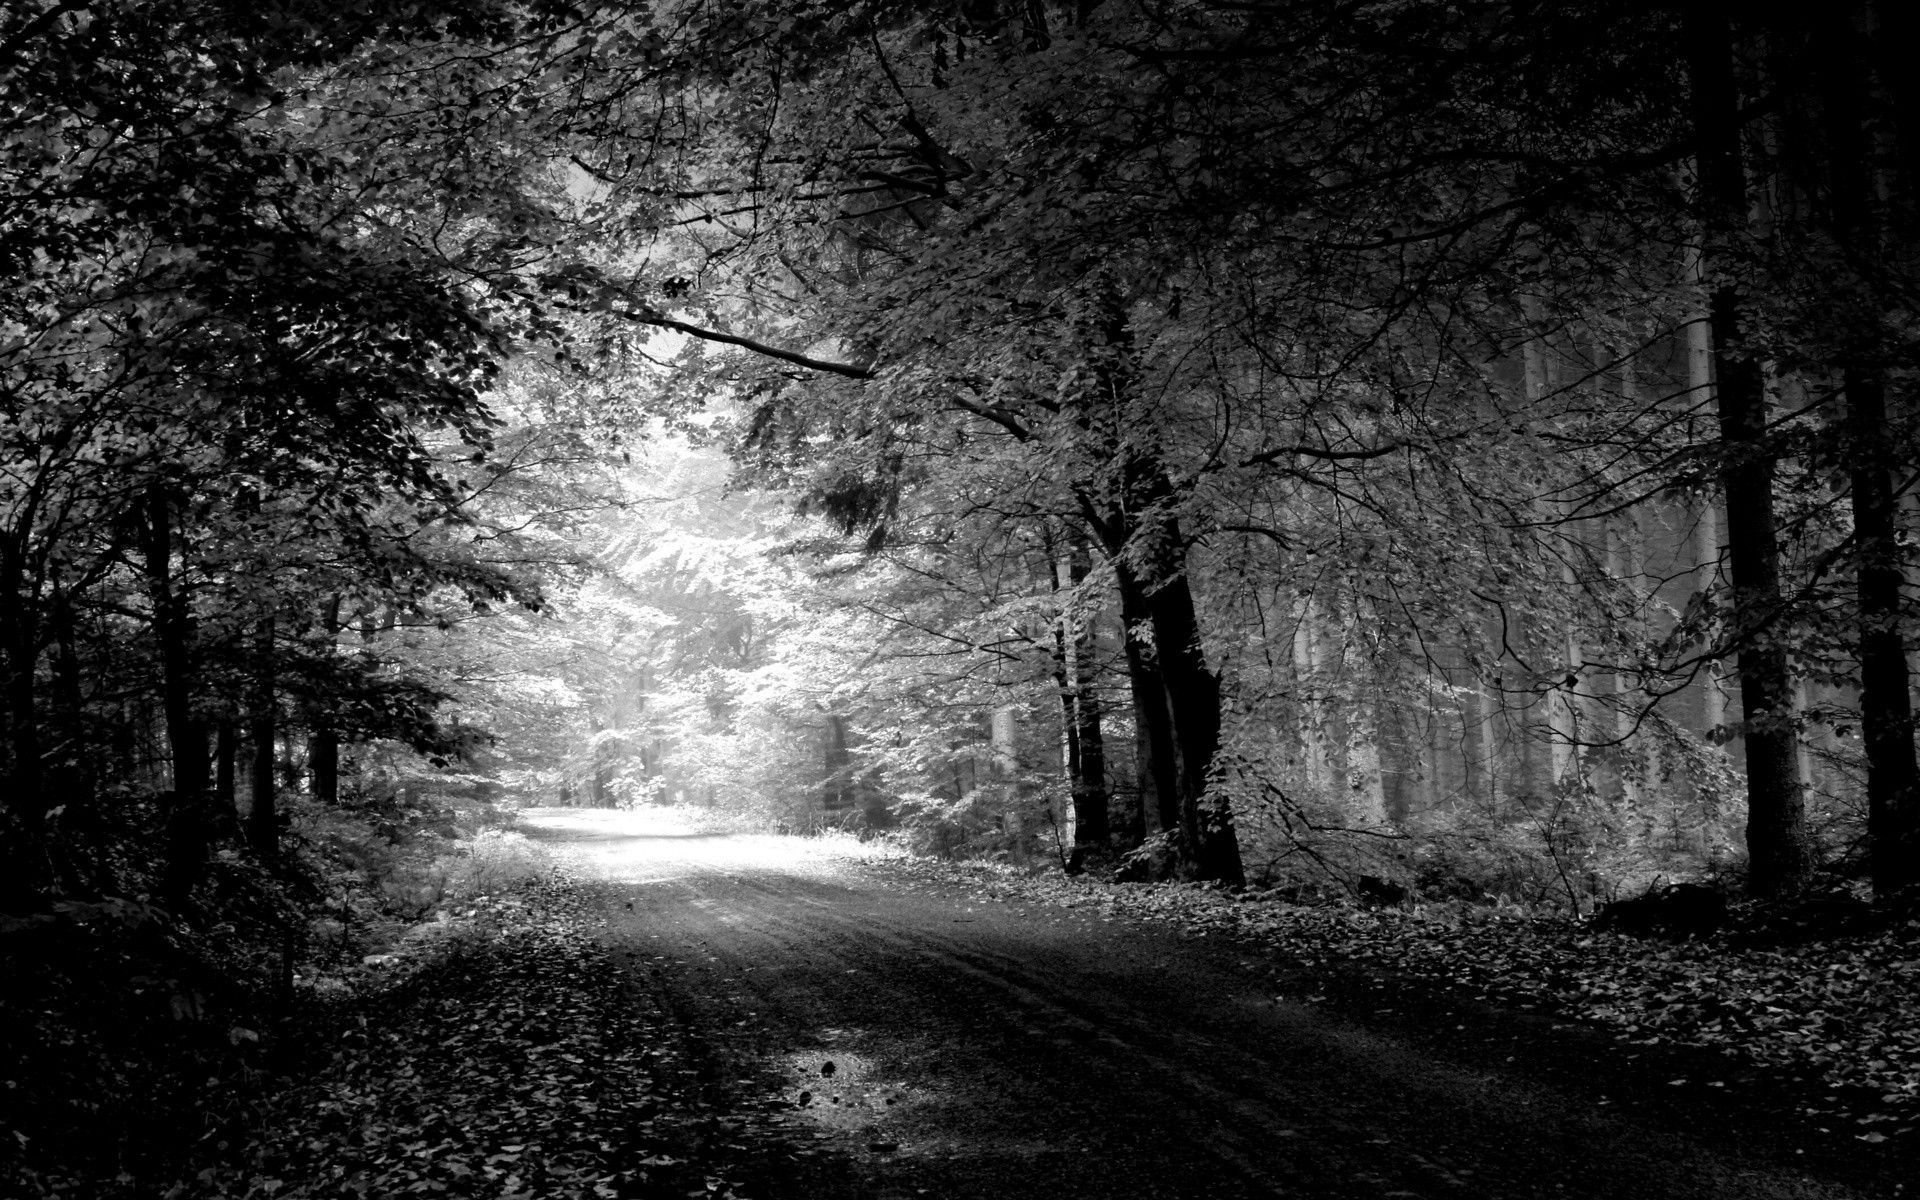 Black In White Nature Hd Wallpapers For Your Desktop Free Download Beautiful Roads Nature Wallpaper Forest Road